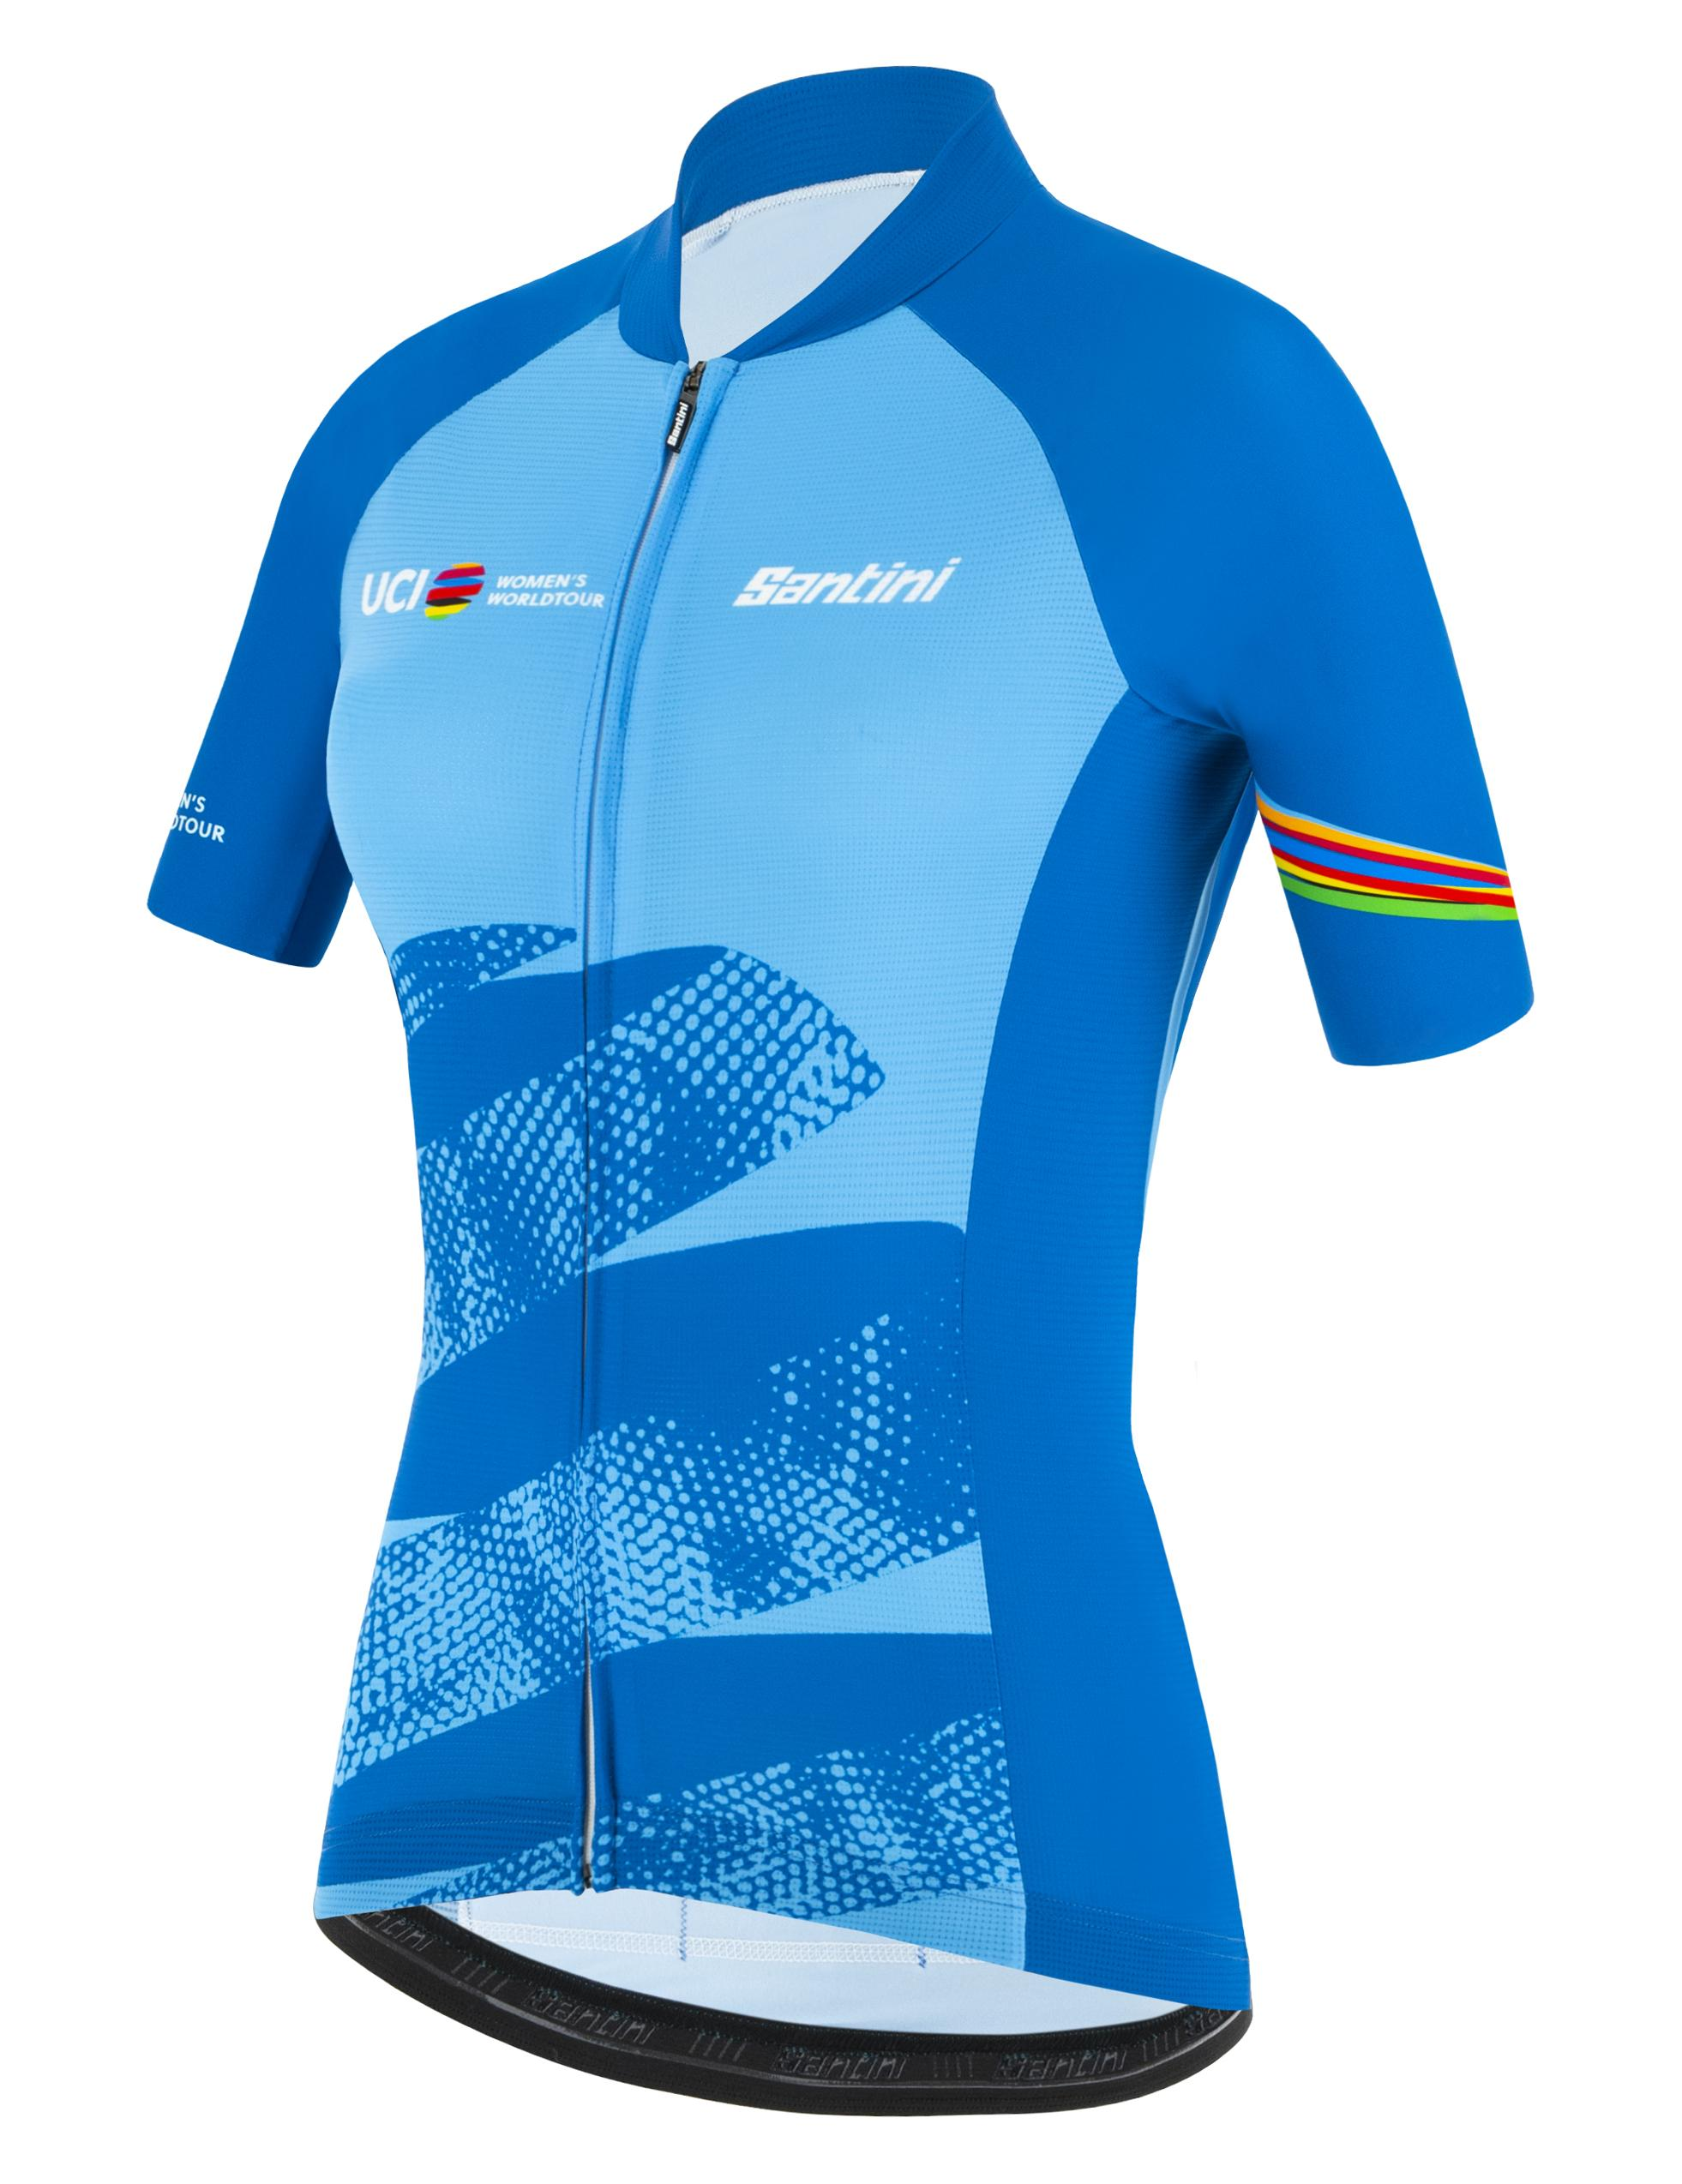 Santini Fietsshirt Korte mouwen Blauw Dames - Official Uci Wwt Leader And Best Young Rider Jersey For Wome Light Blue